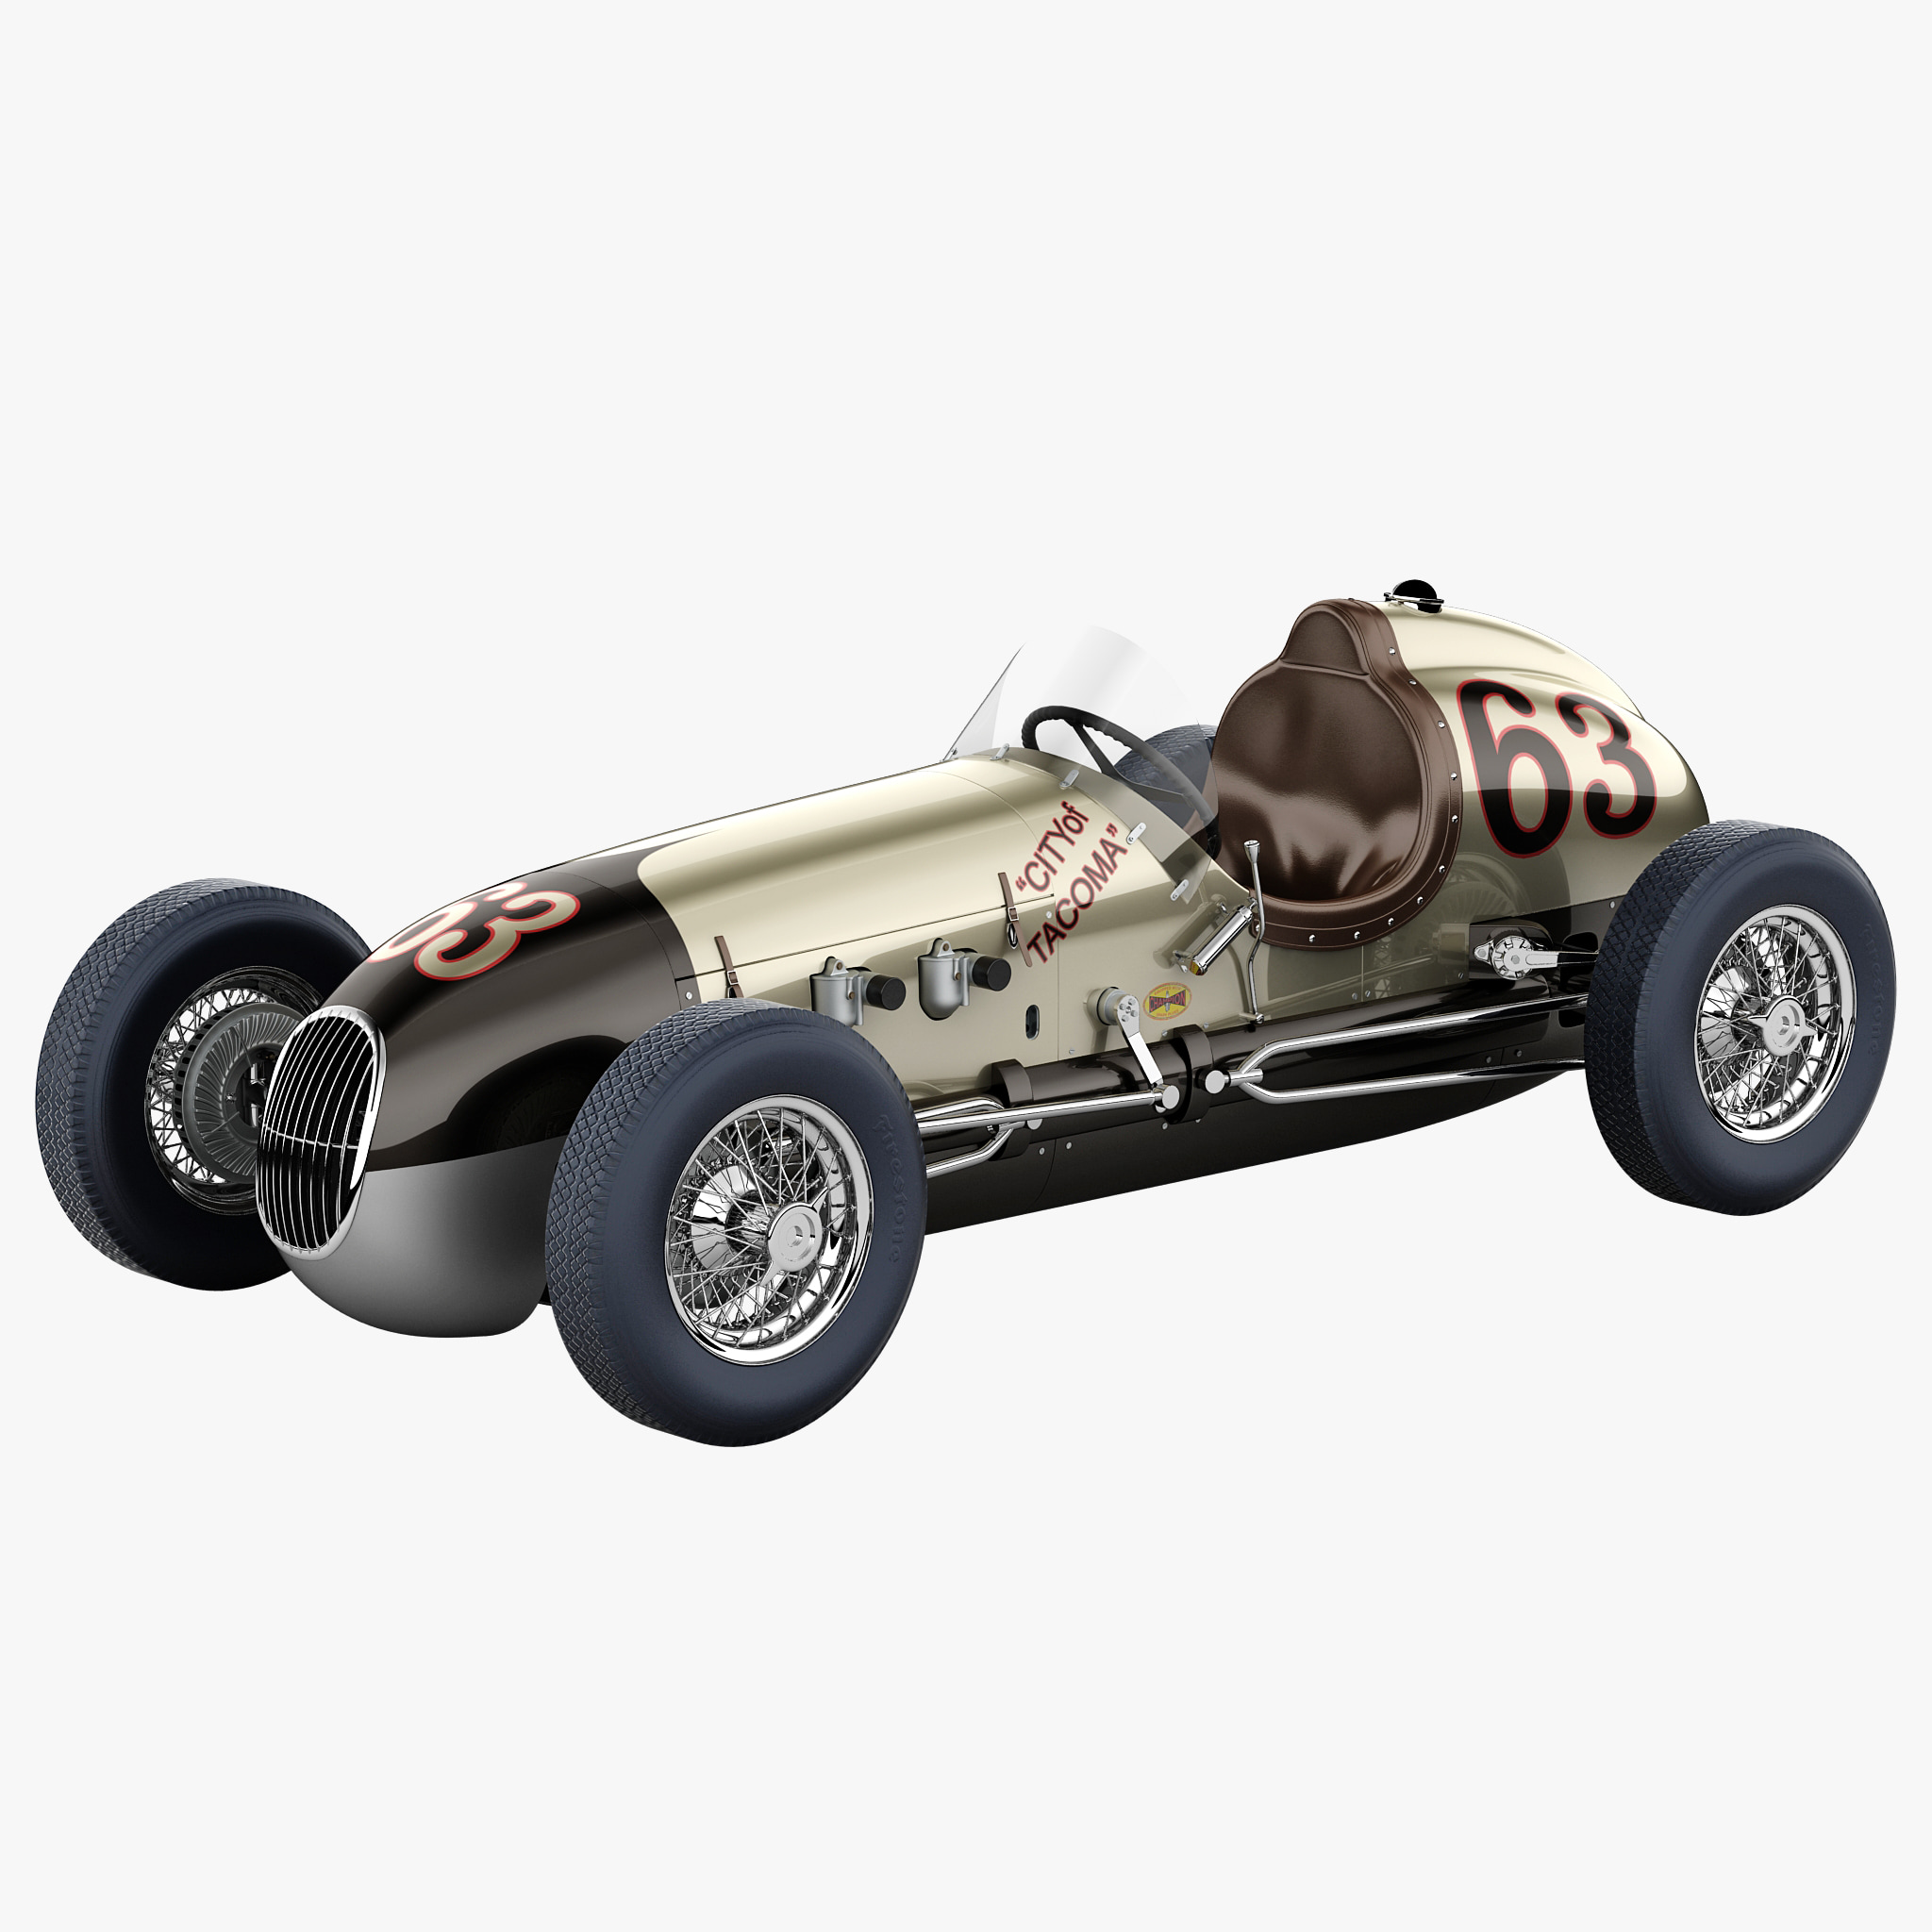 kurtis kraft 2000 vintage race car 3d model by 3d molier. Black Bedroom Furniture Sets. Home Design Ideas